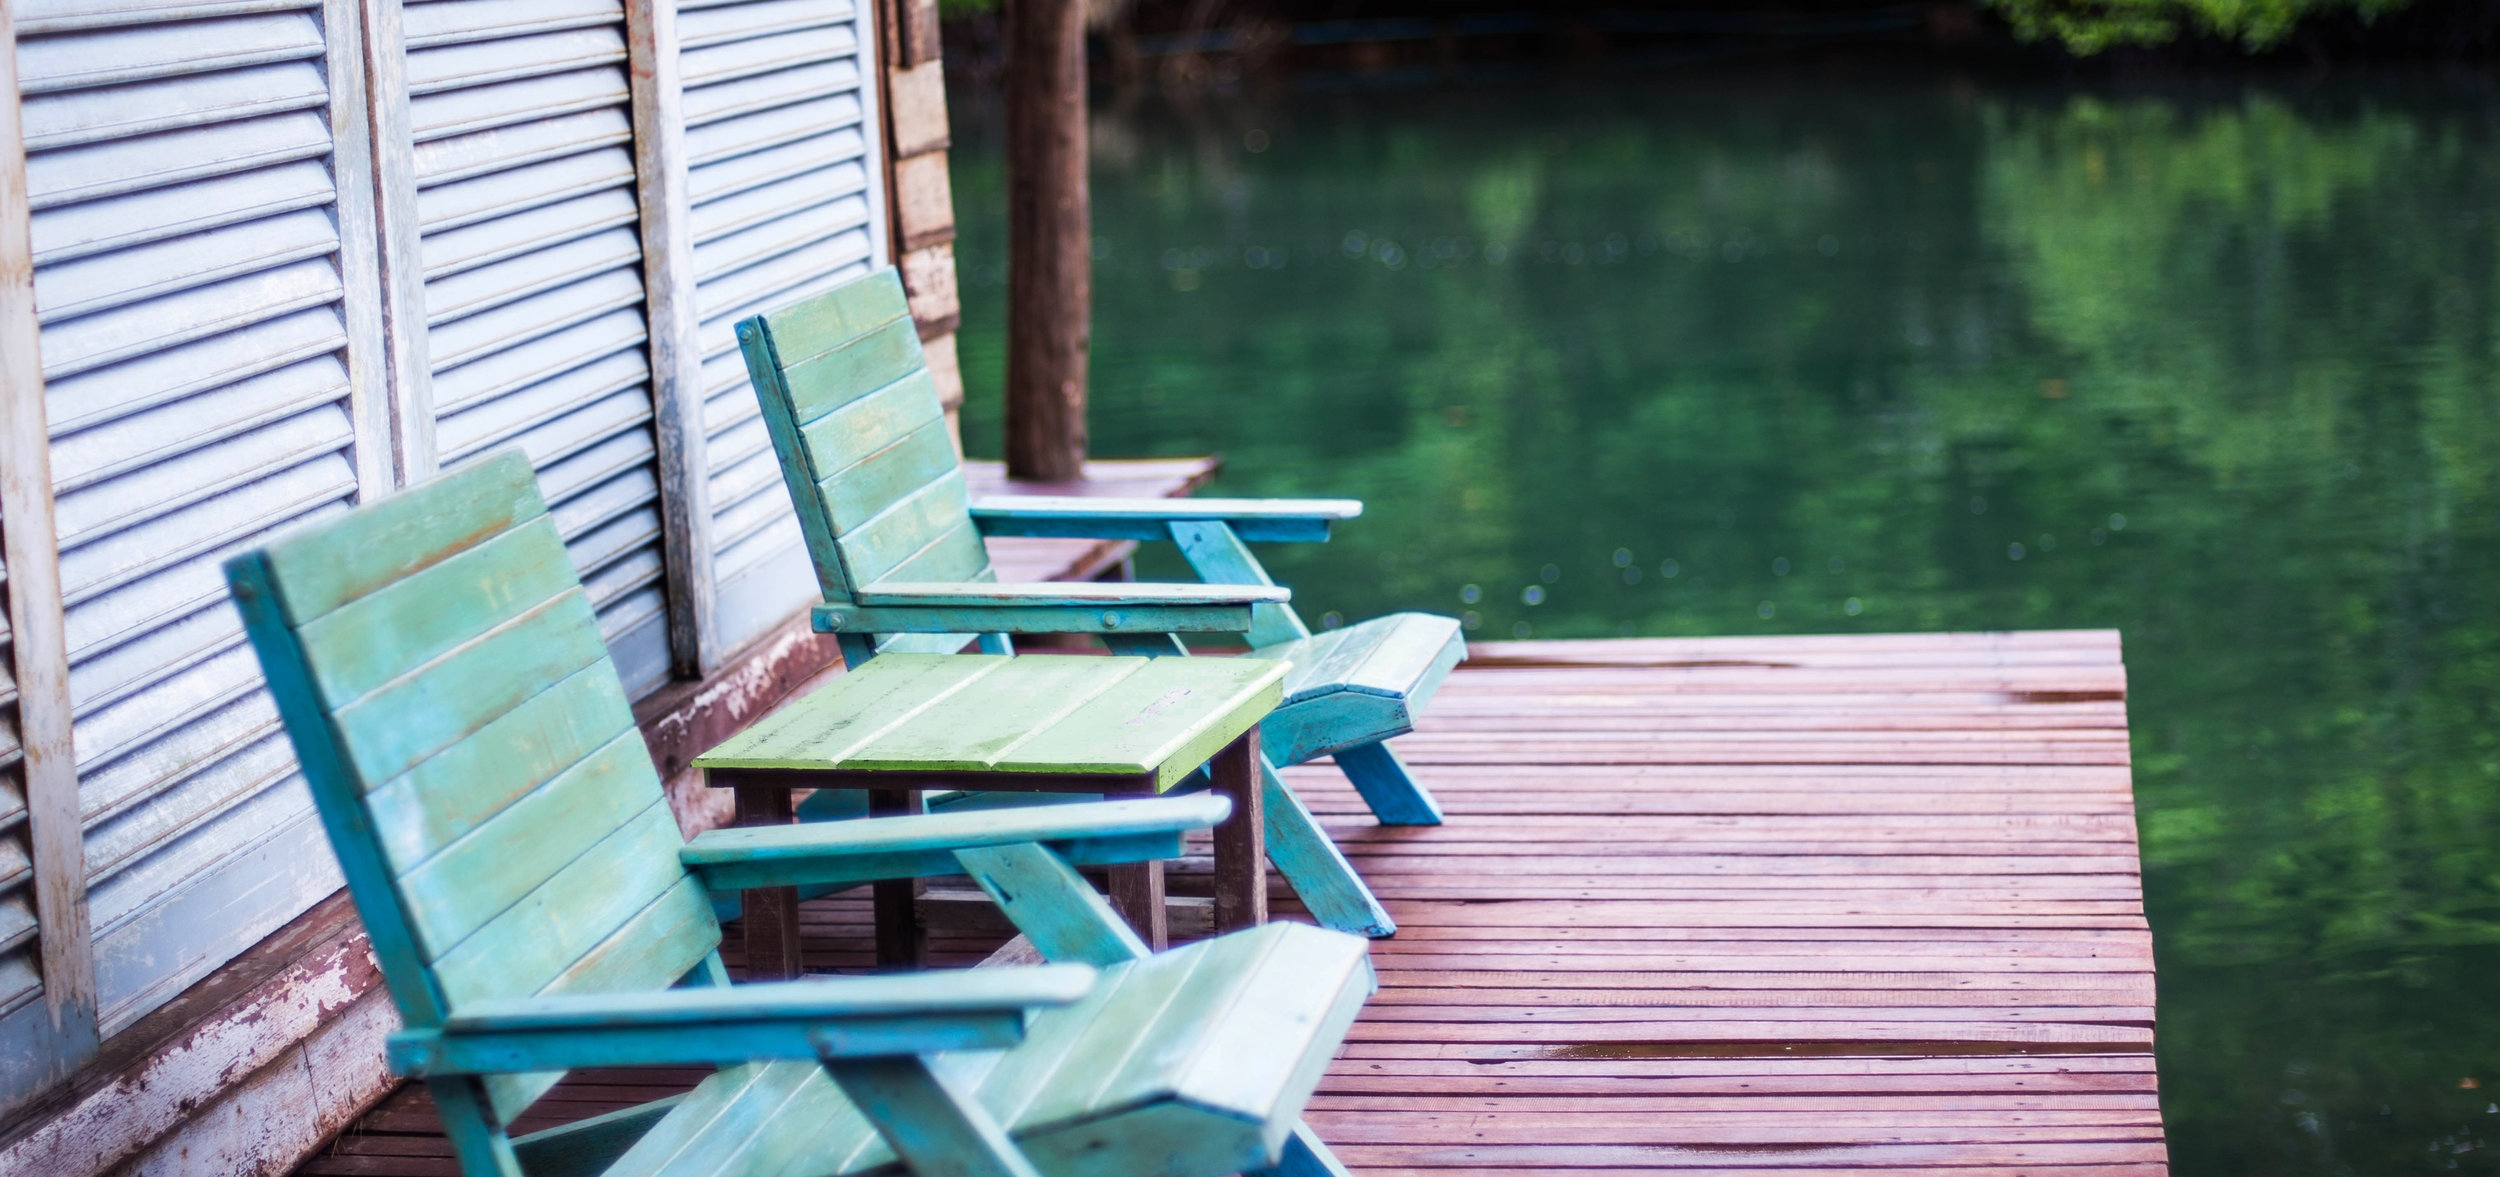 sally+vail+istock+image+chairs+on+dock.jpg